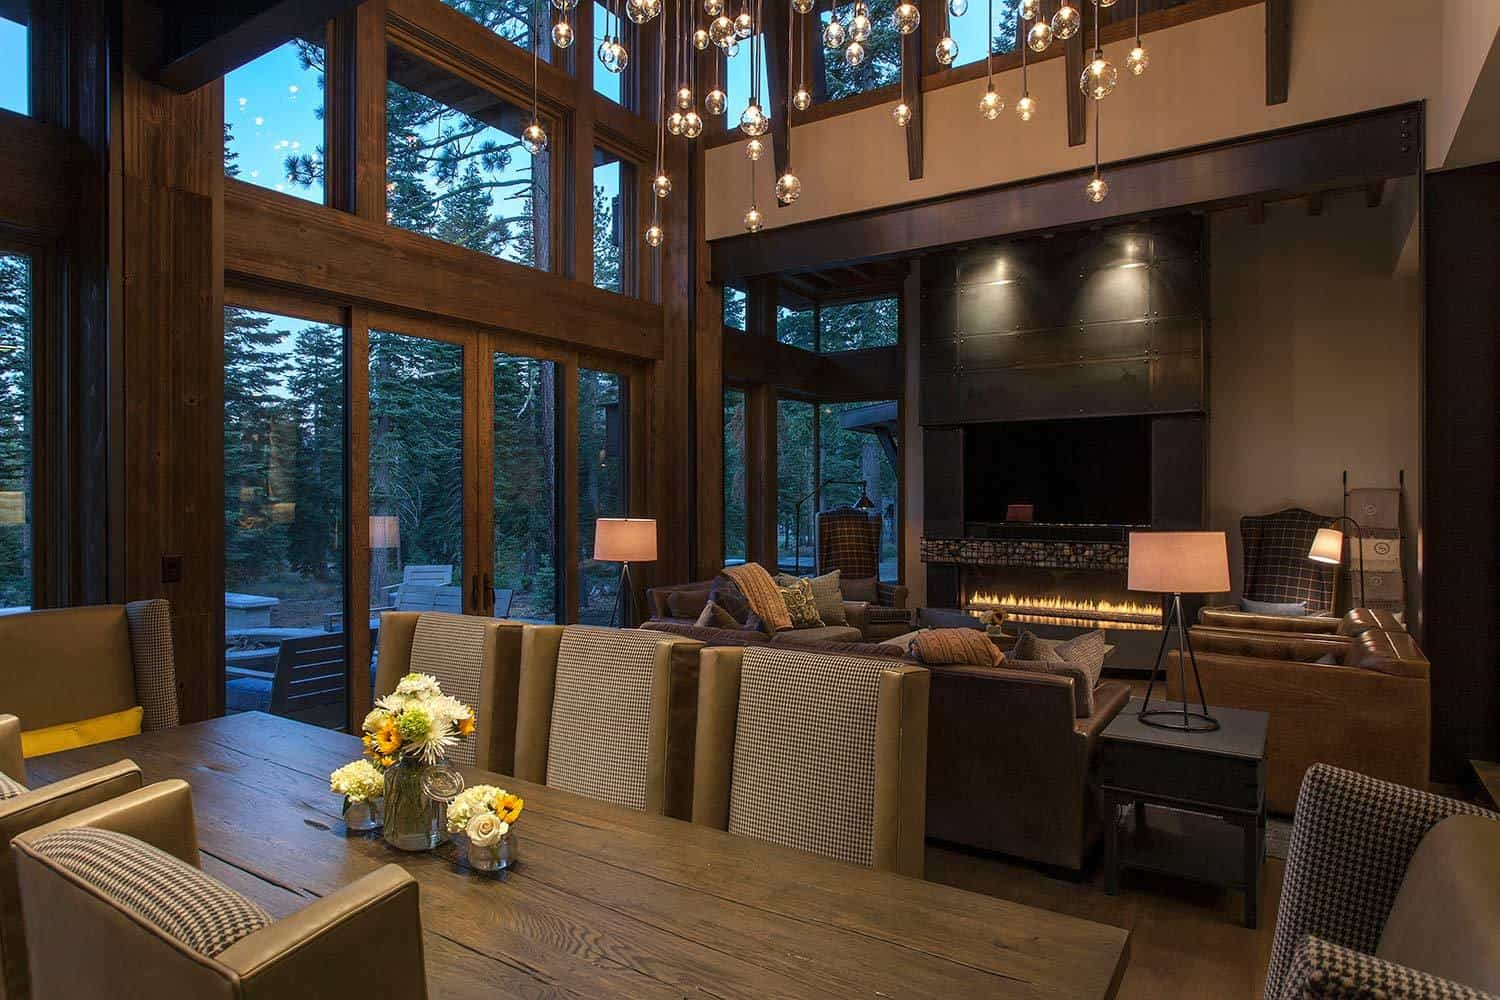 Lake tahoe getaway features contemporary barn aesthetic for Great room kitchen ideas